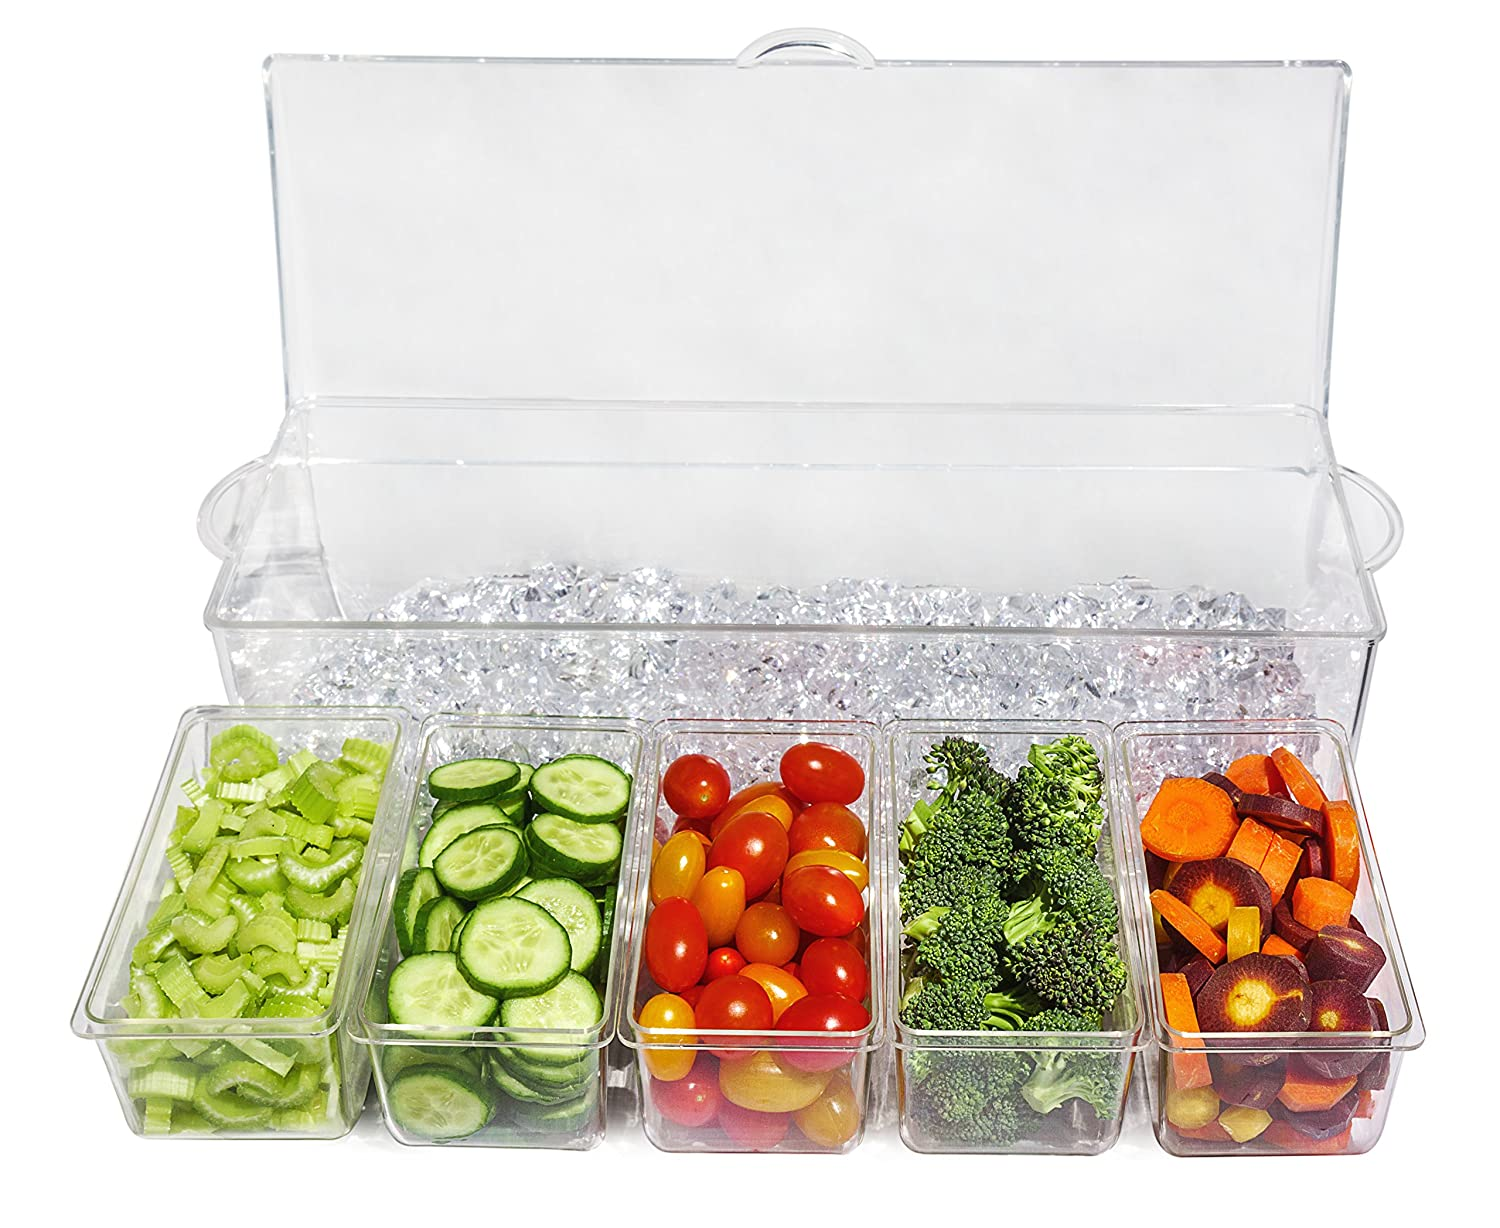 Serving Tray Container with 5 Removable Dishes with over 2 Cup Capacity Each and Hinged Lid 3 Serving Spoons Ice Chilled 5 Compartment Condiment Server Caddy 3 Tongs Included Elegant Events